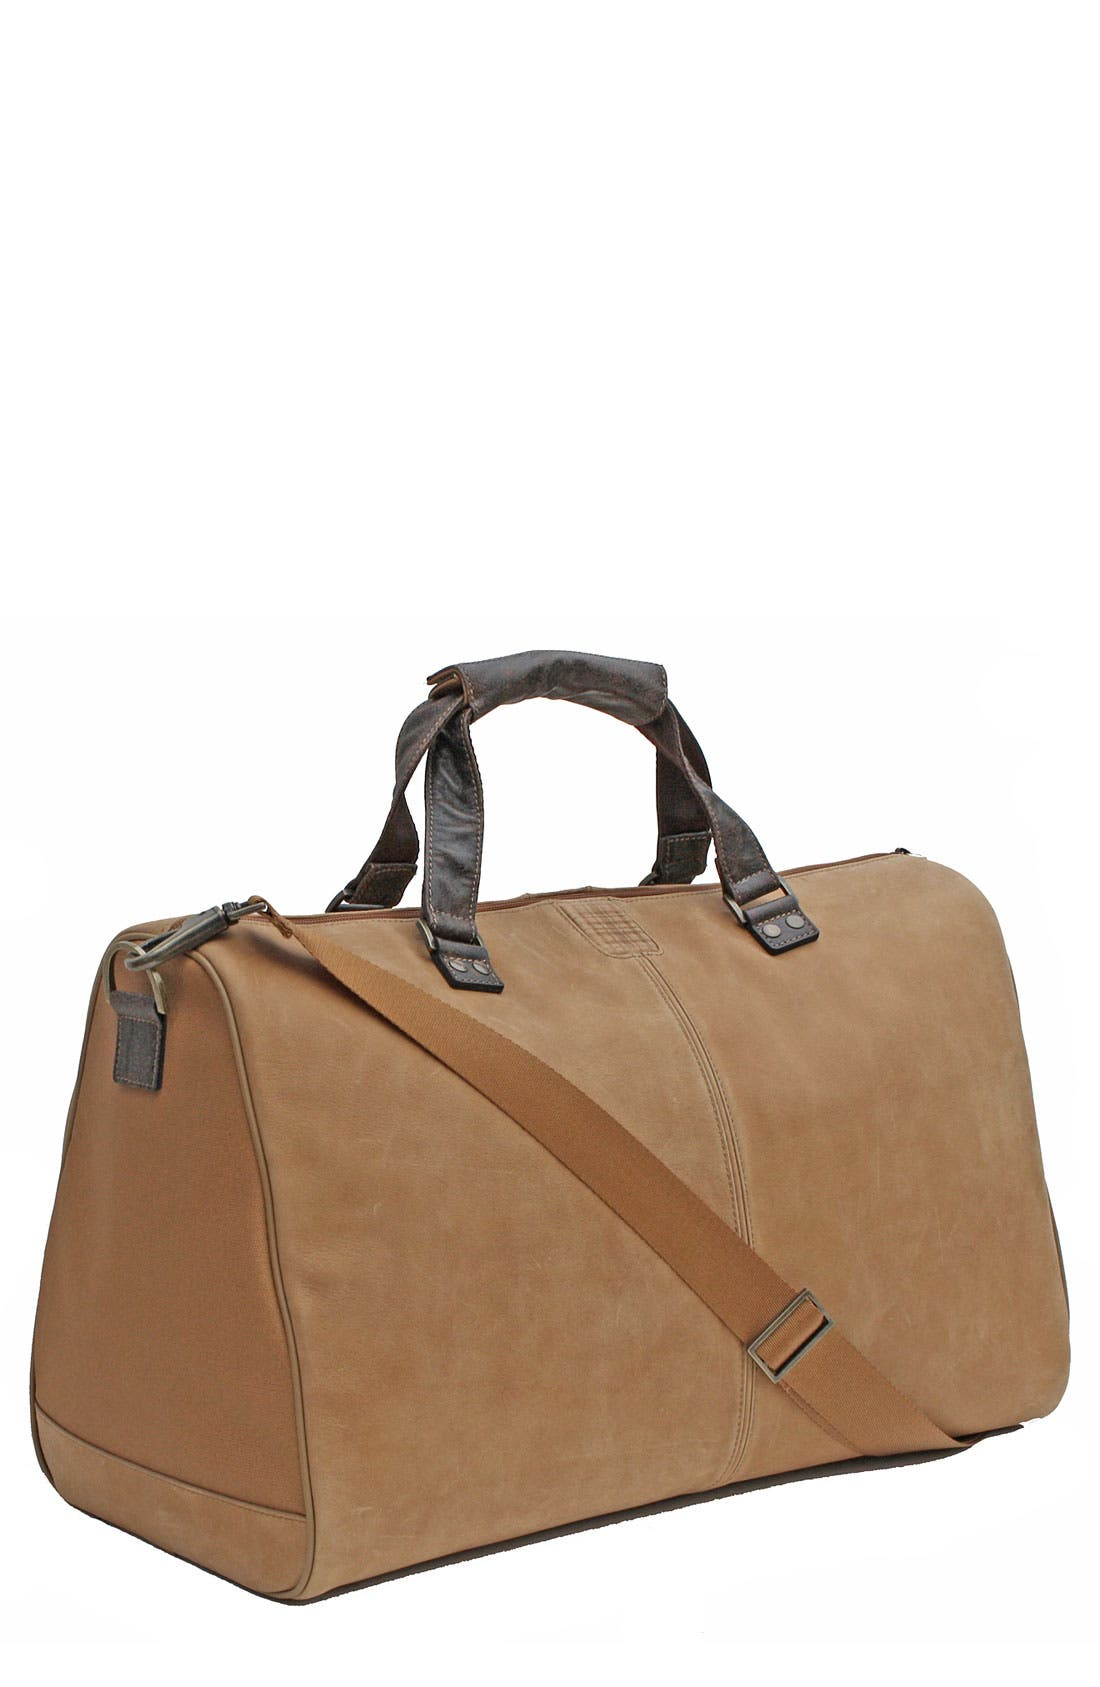 Alternate Image 1 Selected - Boconi 'Leon' Duffel